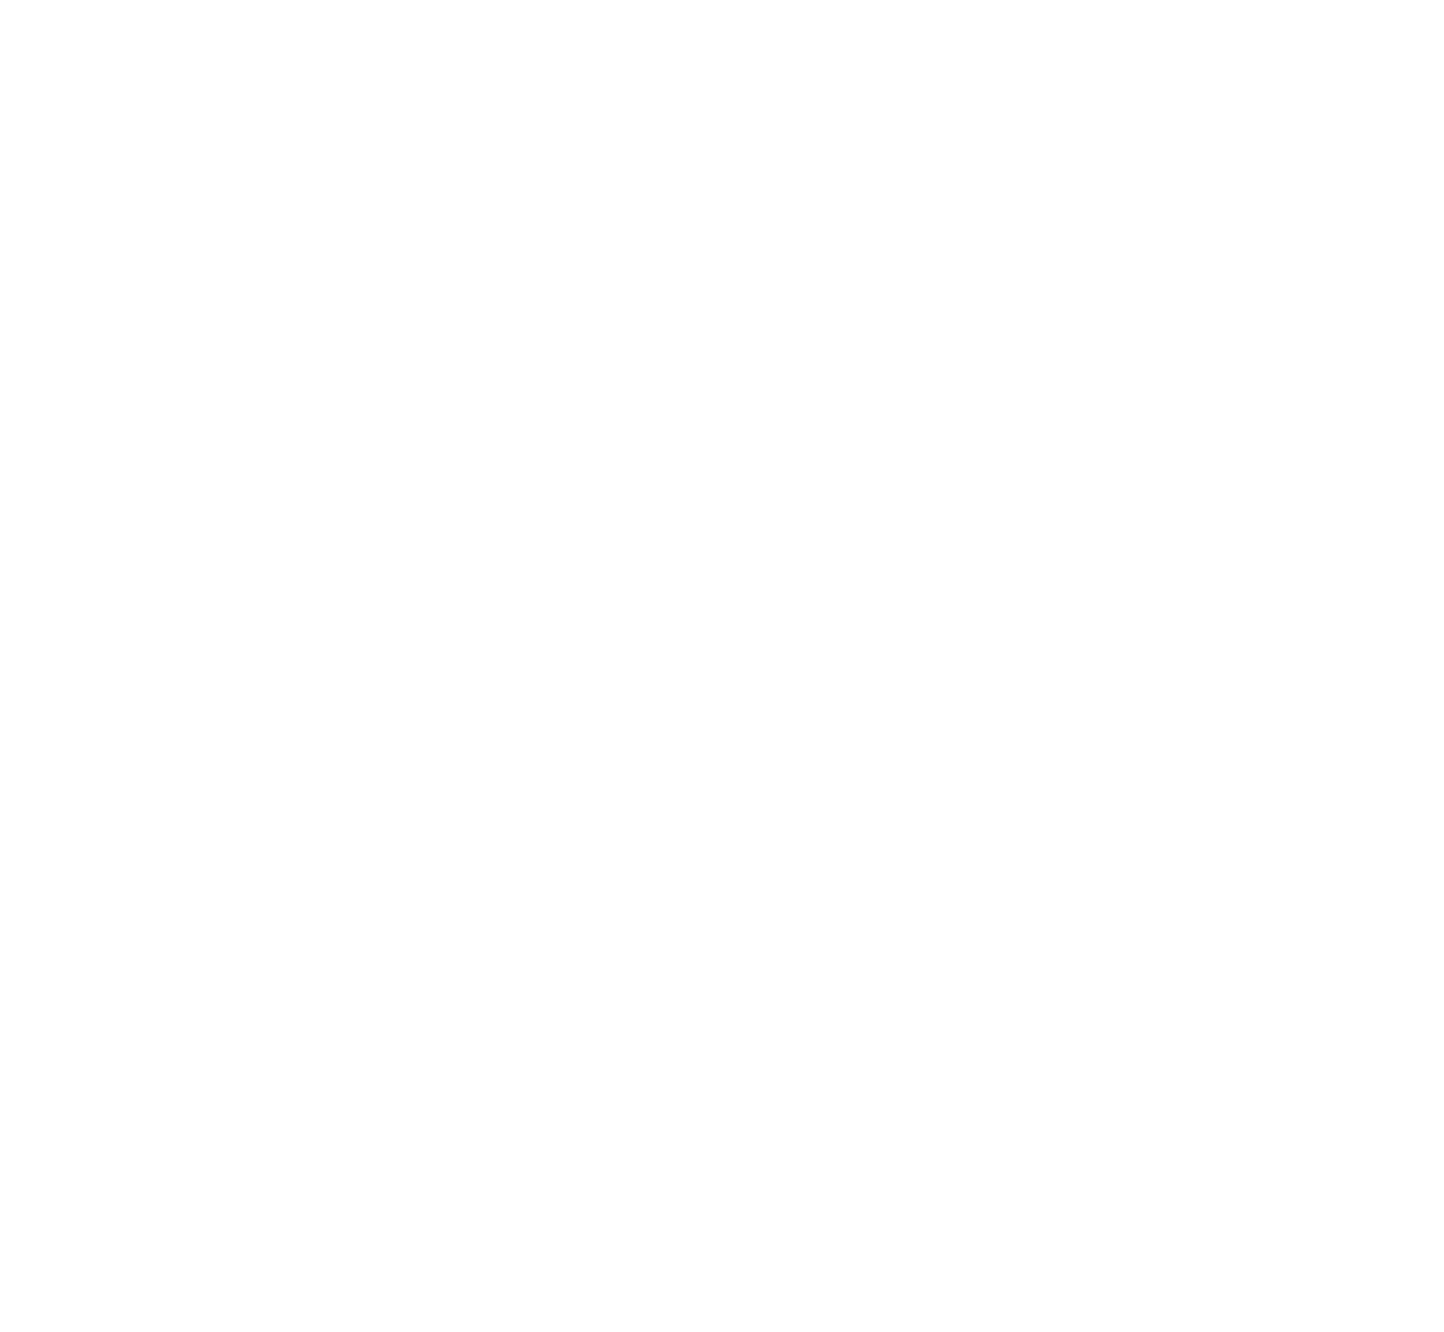 Northwood UWS